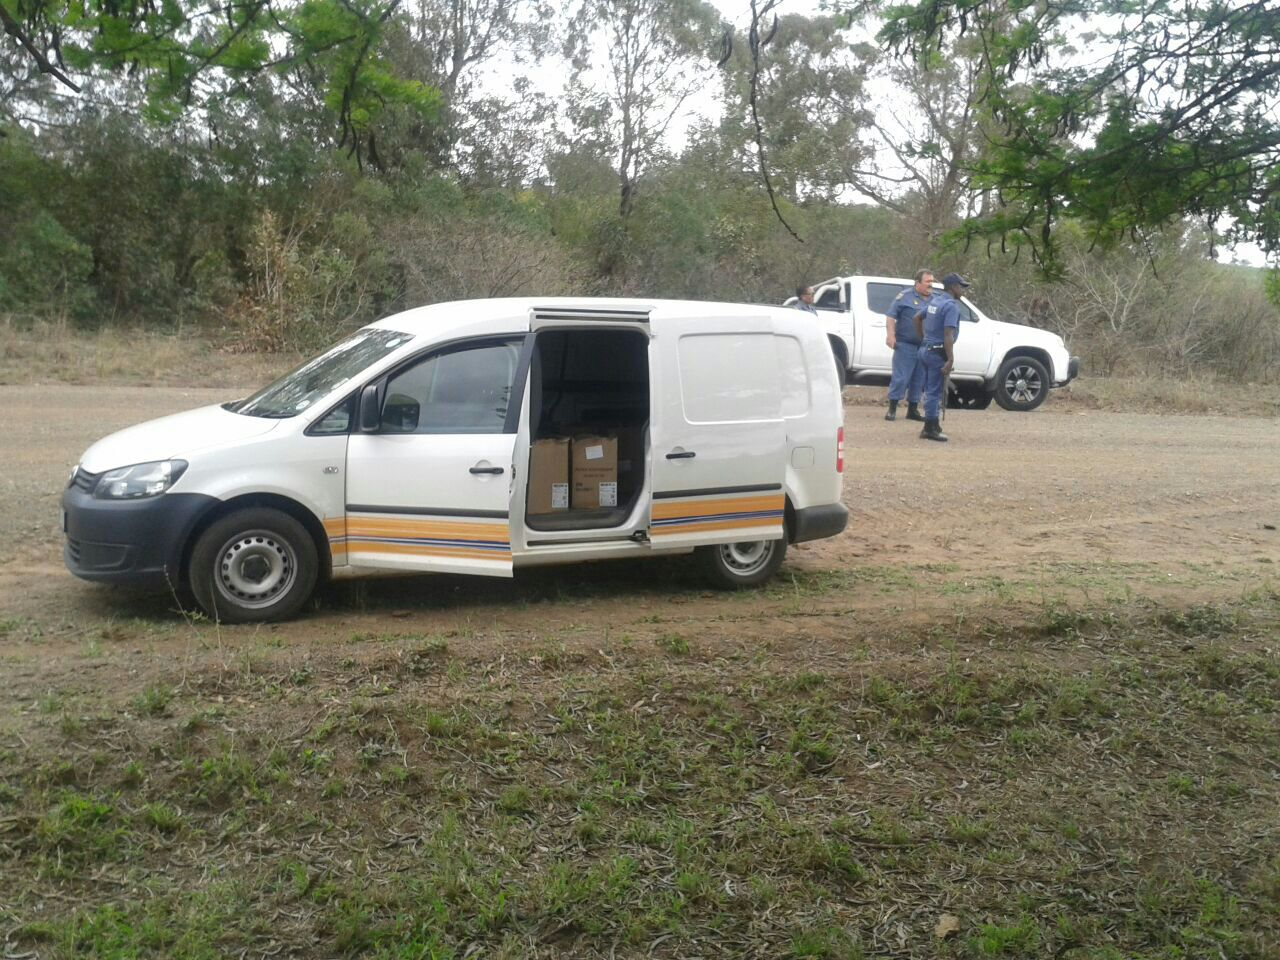 Armed suspects arrested after robbing cigarette delivery vehicle in Rondebosch